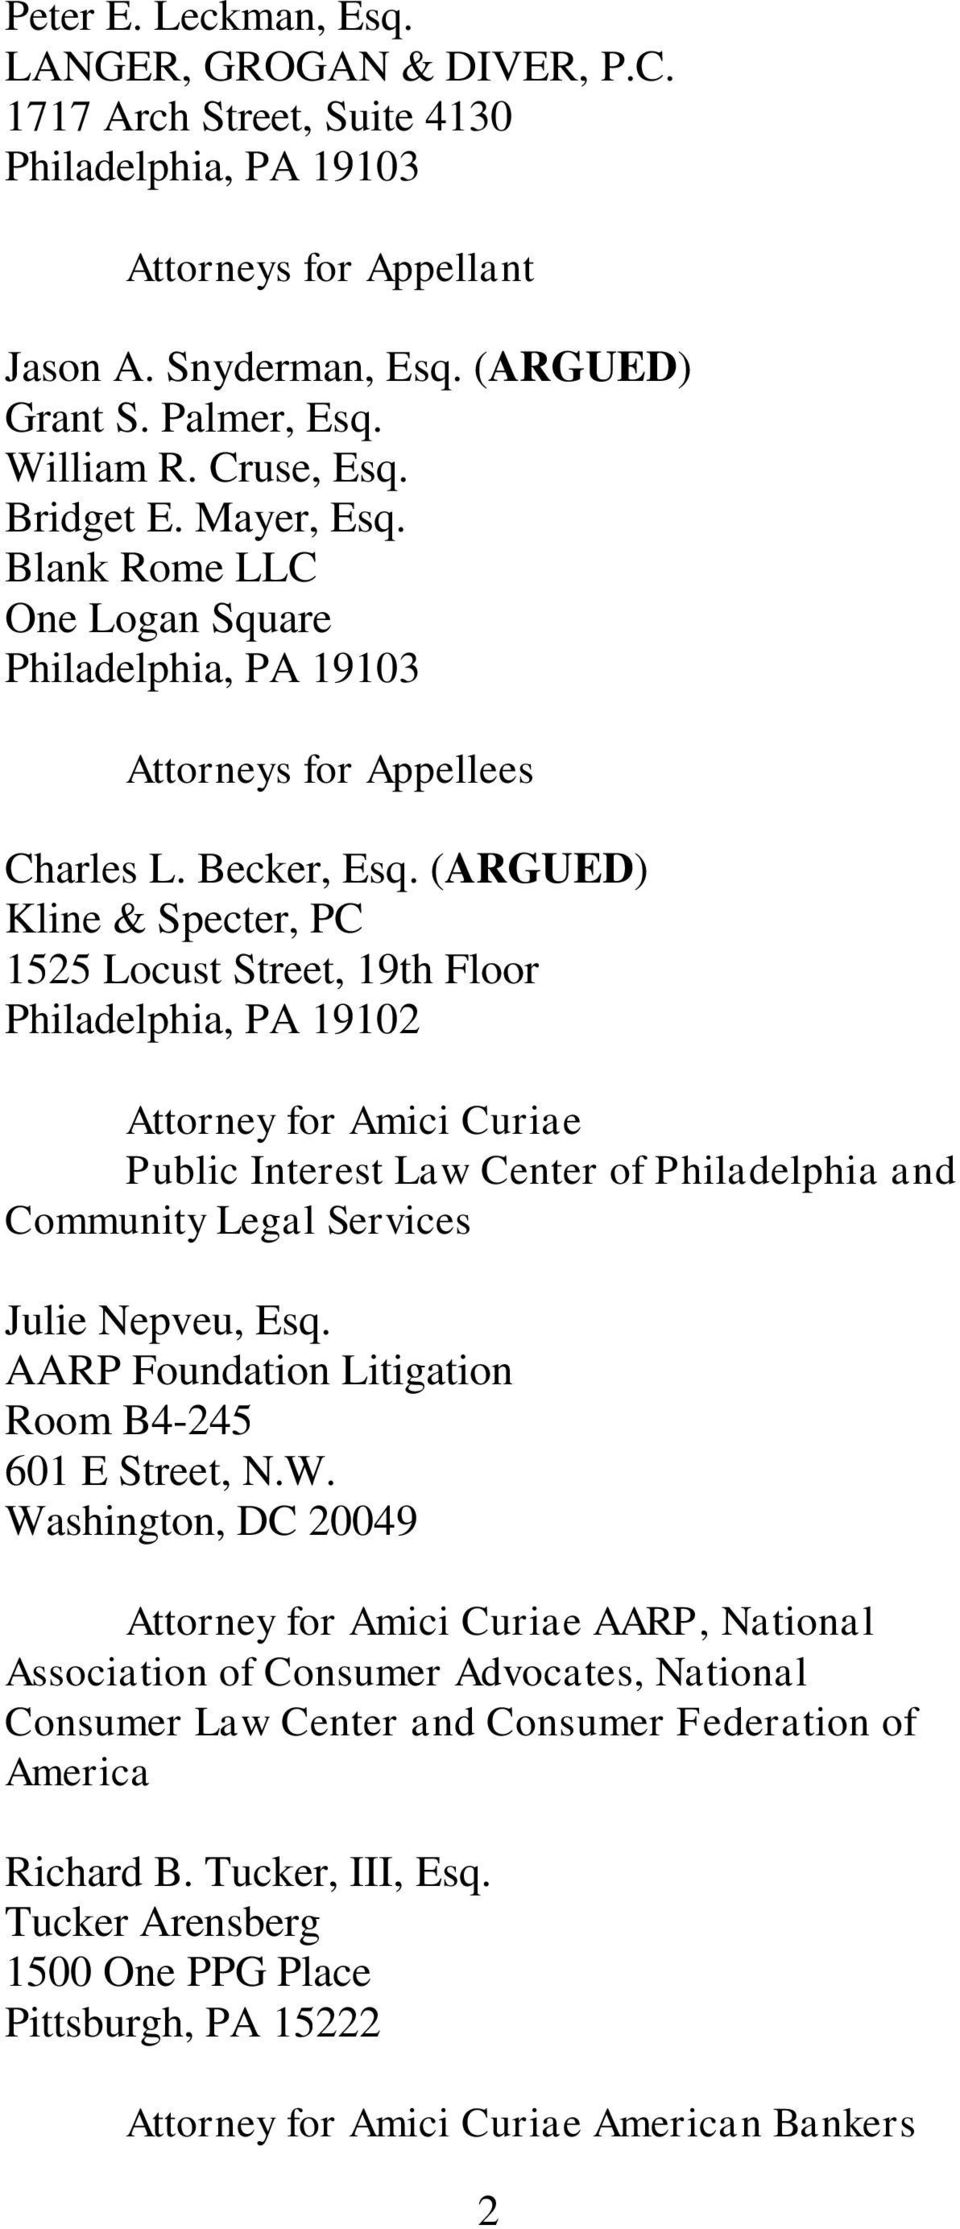 (ARGUED) Kline & Specter, PC 1525 Locust Street, 19th Floor Philadelphia, PA 19102 Attorney for Amici Curiae Public Interest Law Center of Philadelphia and Community Legal Services Julie Nepveu, Esq.